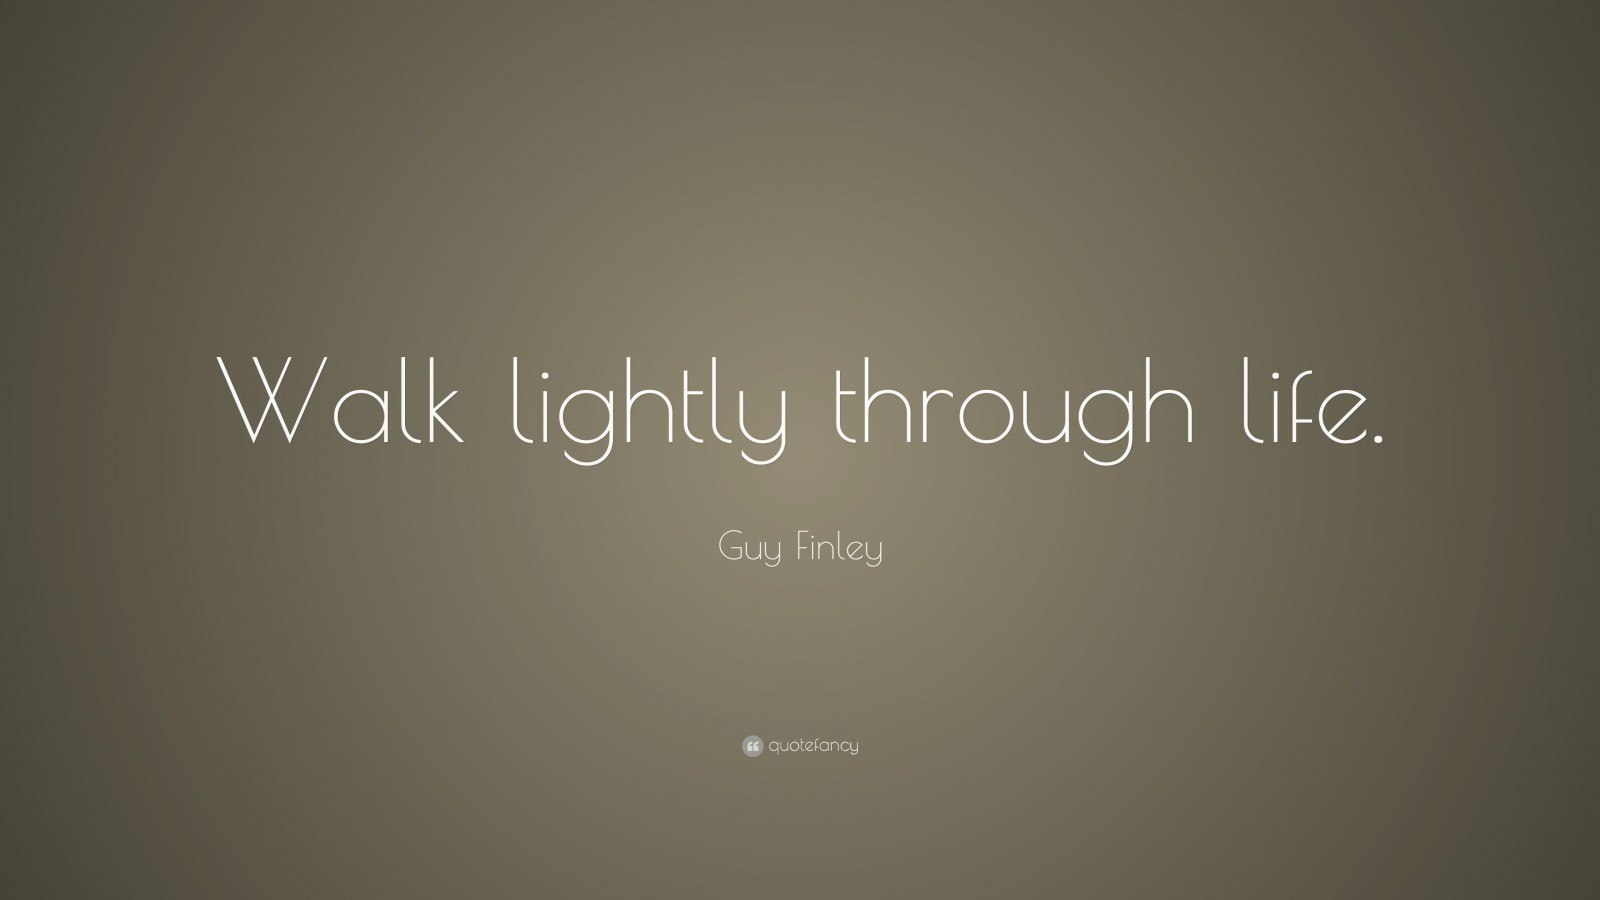 5020095-Guy-Finley-Quote-Walk-lightly-through-life